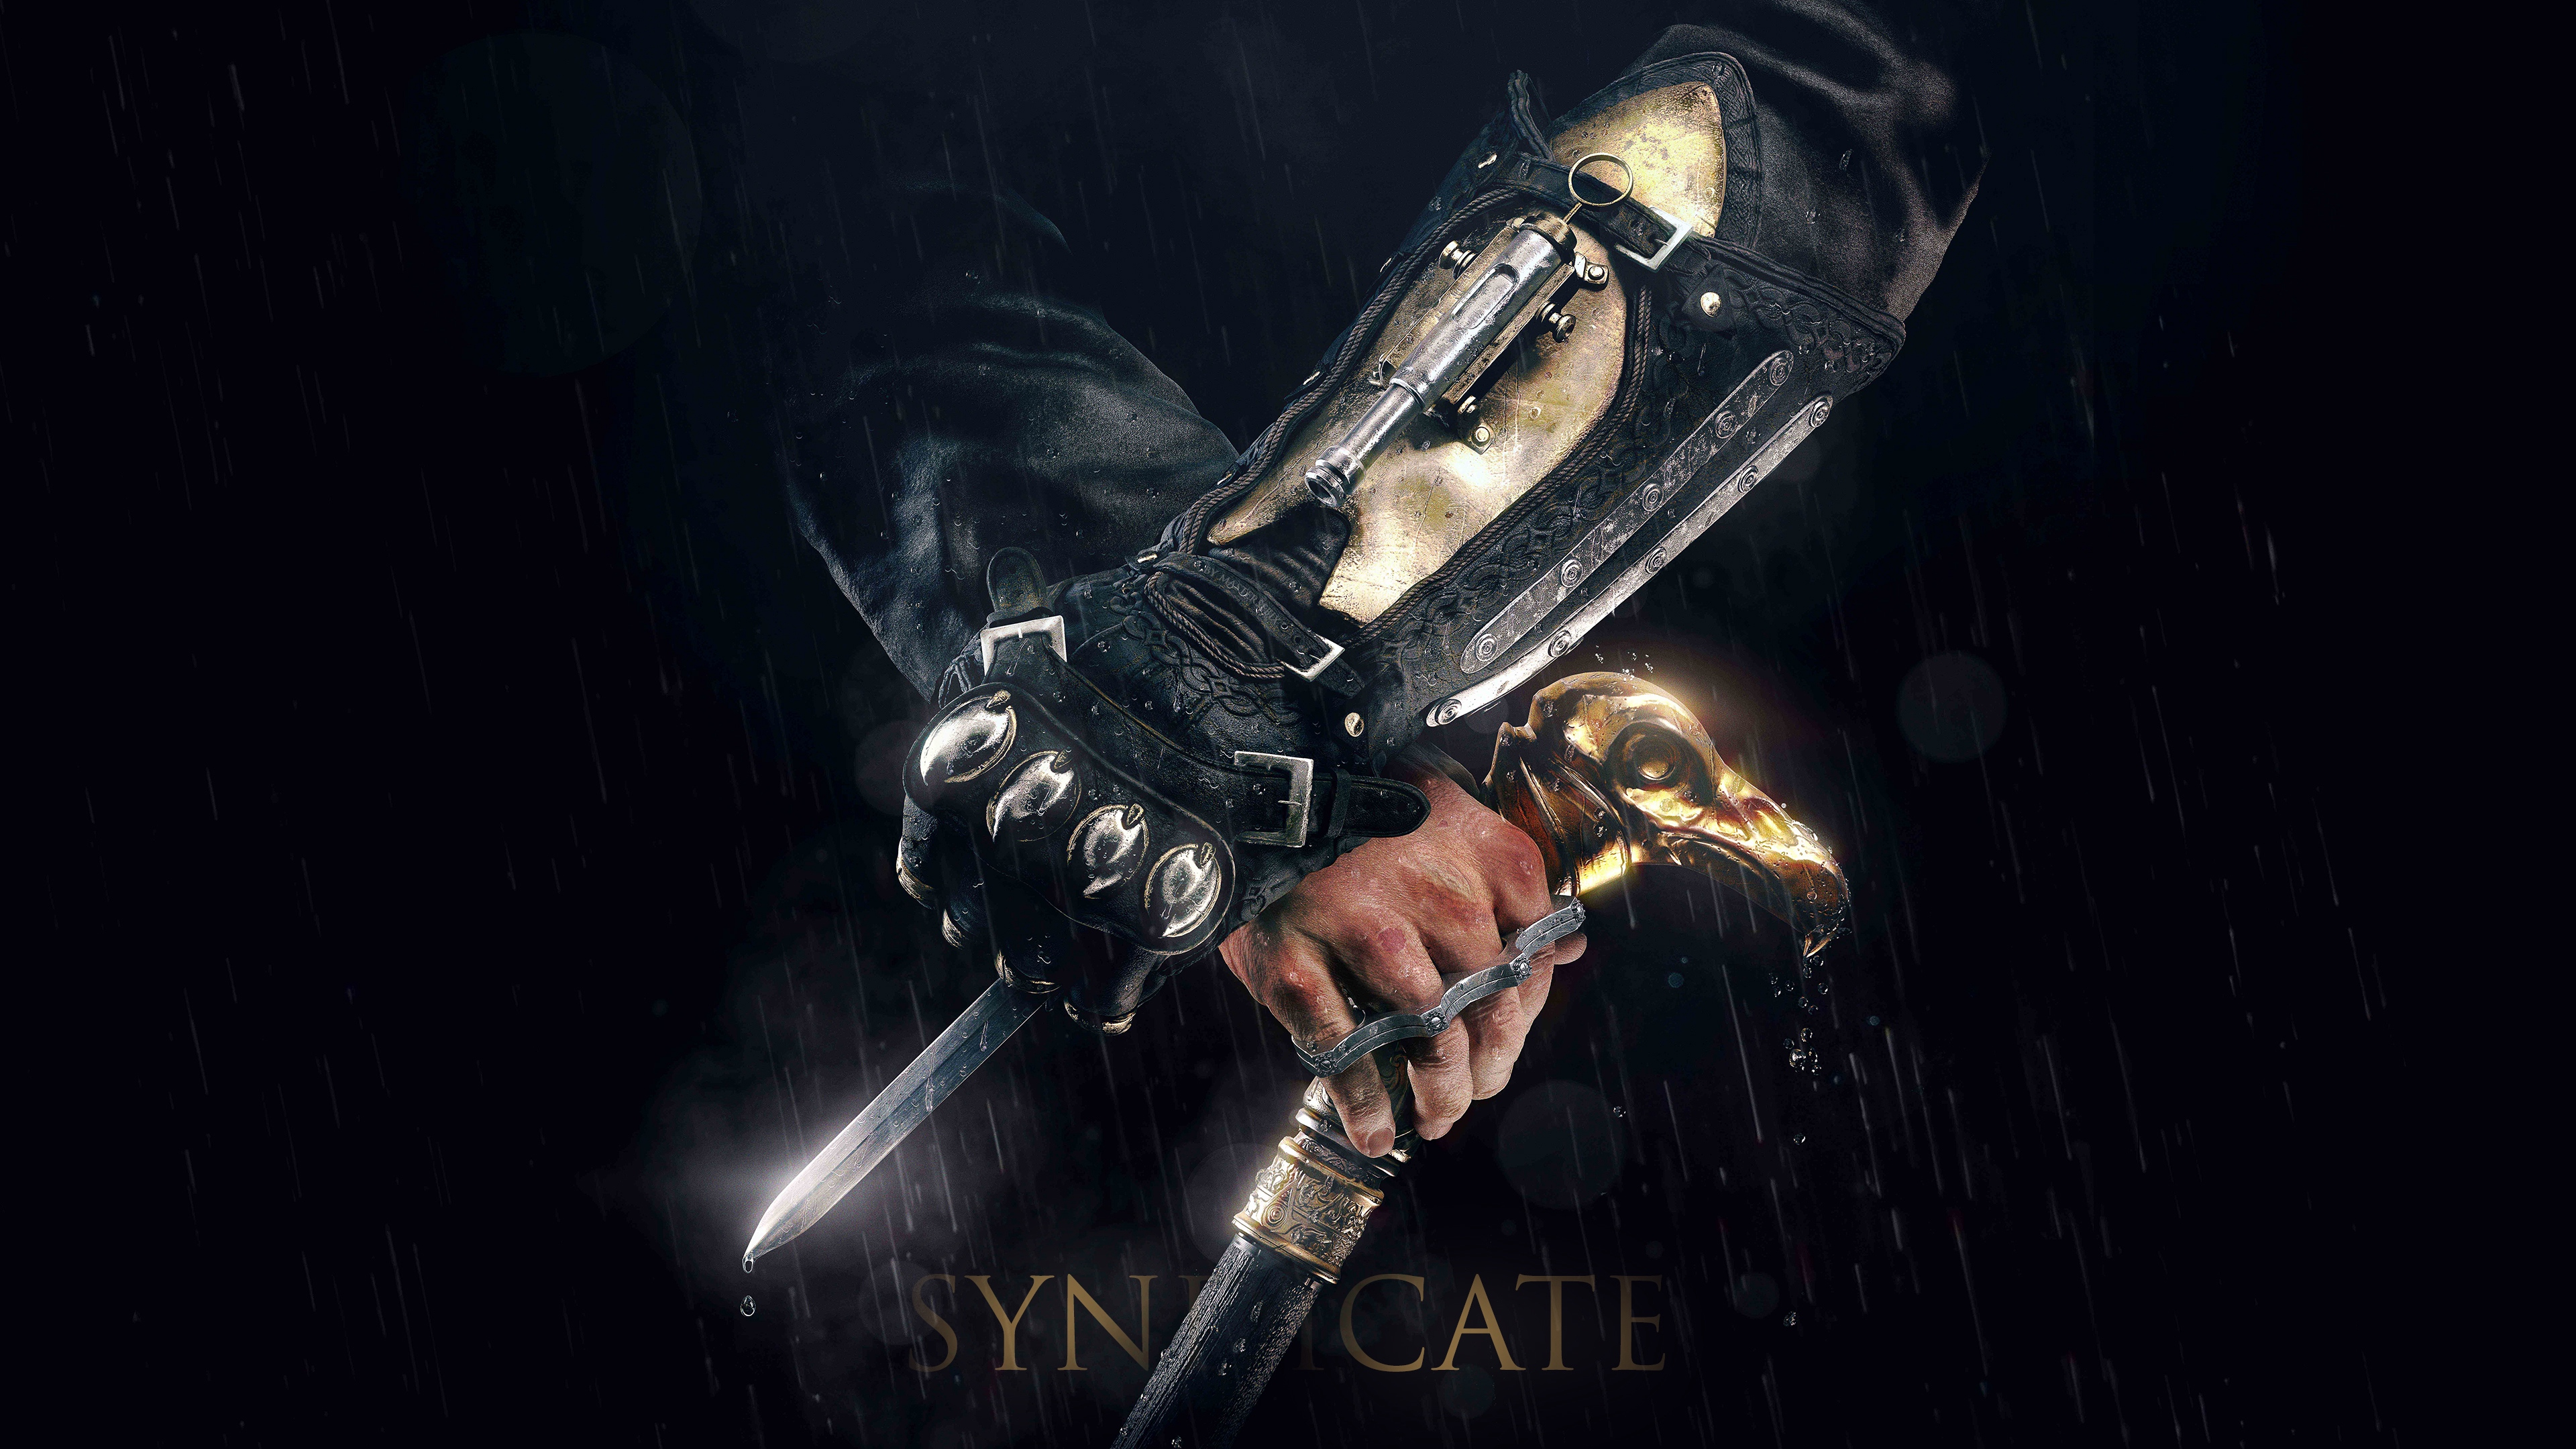 assassins creed syndicate jacob frye 4k 1538945018 - assassins creed, syndicate, jacob frye 4k - syndicate, jacob frye, assassins creed